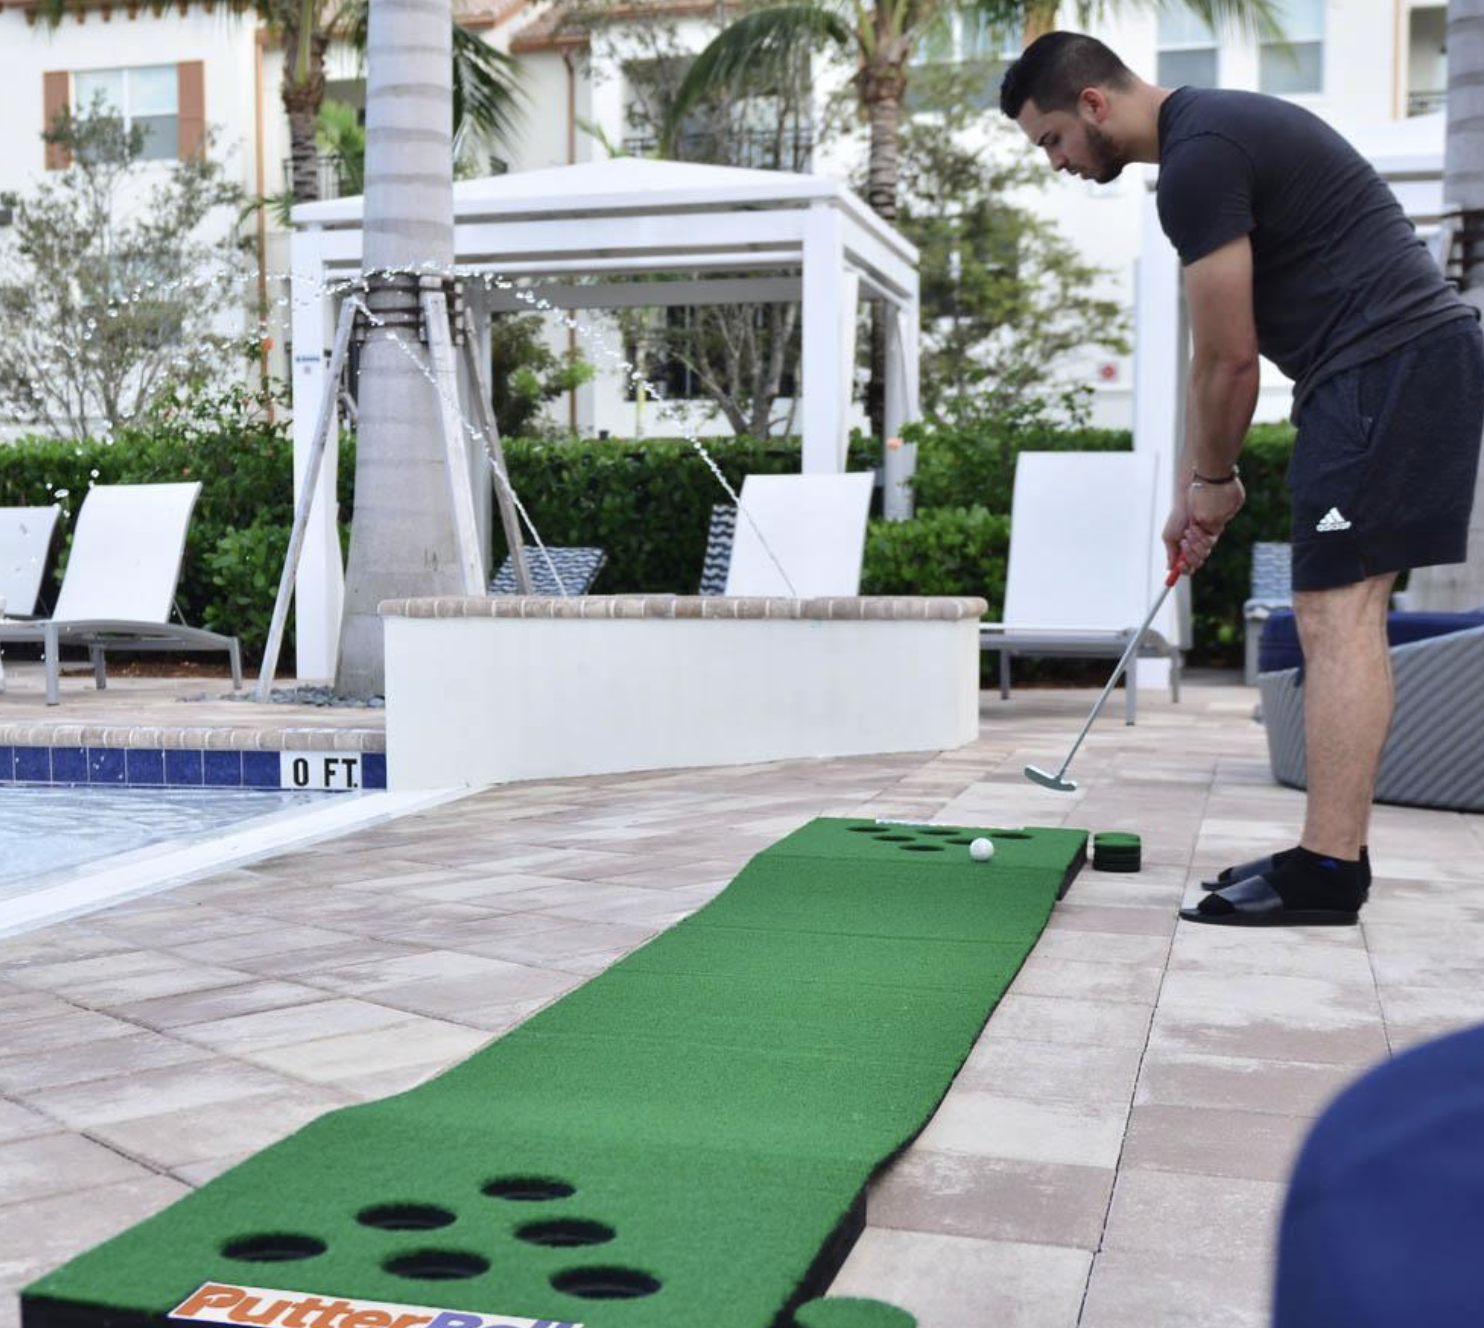 Putter Pong Golf Rental Florida - Corpor